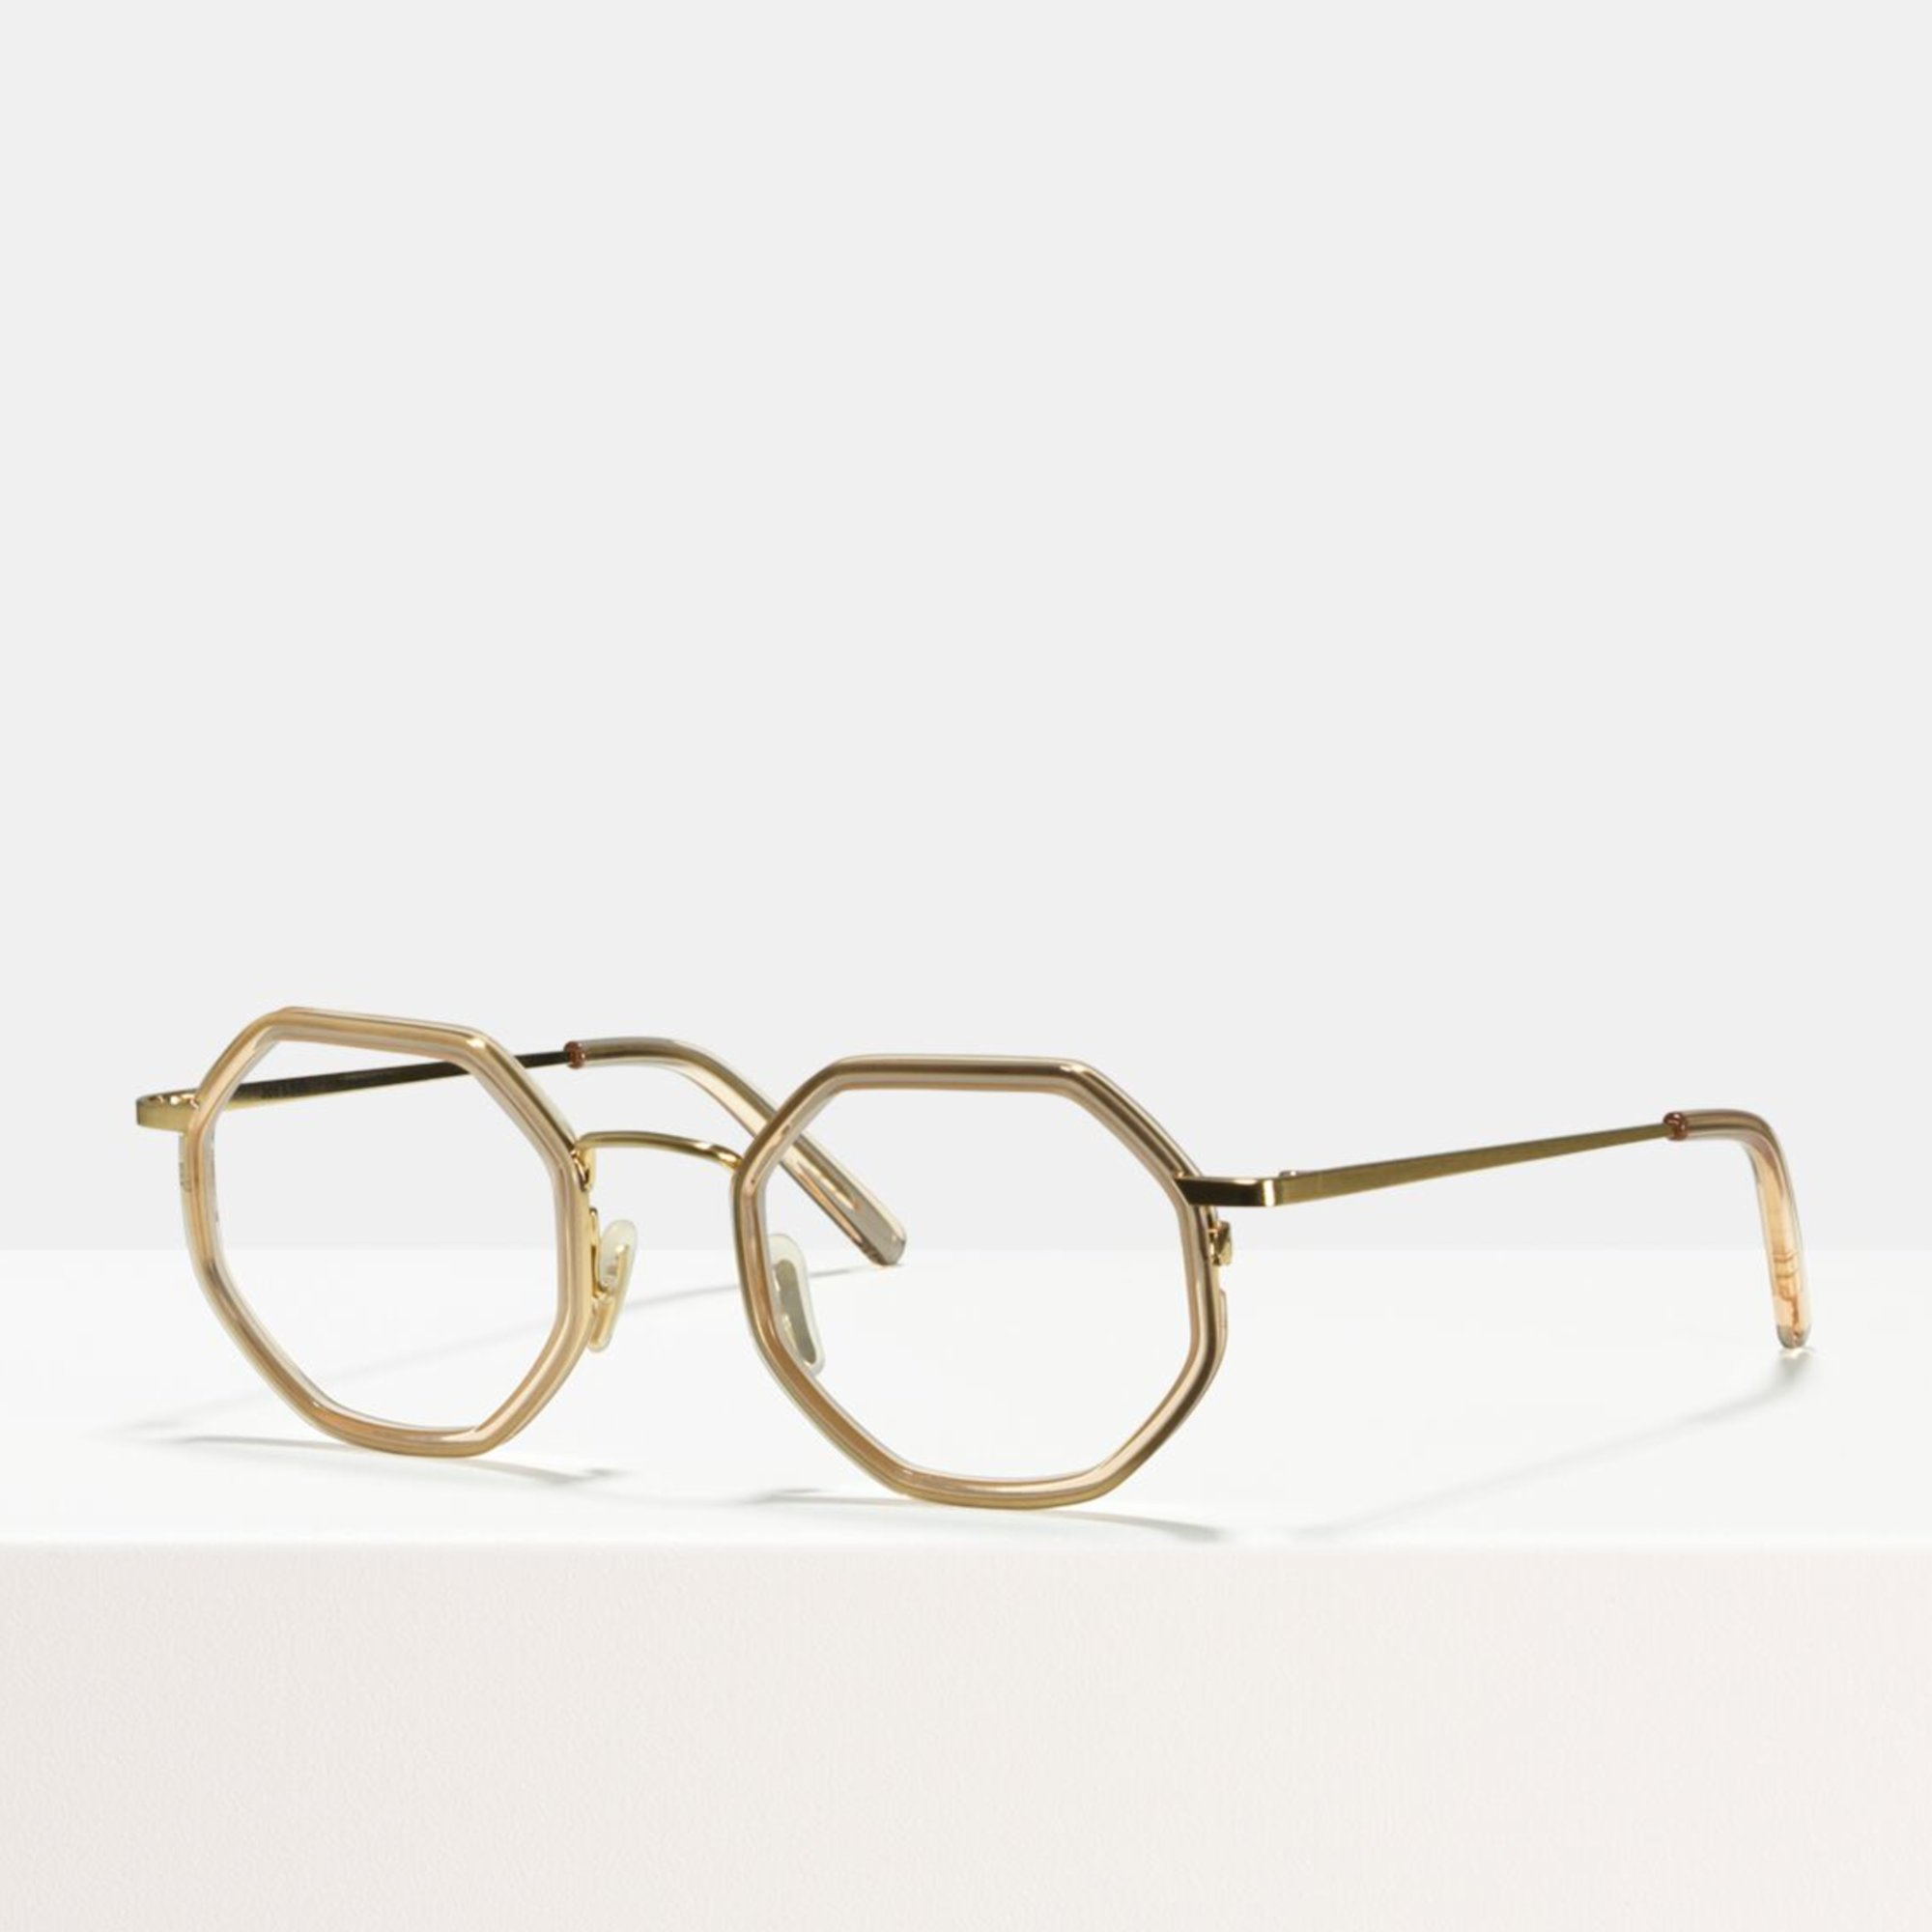 Ace & Tate Glasses |  acetate in Clear, Gold